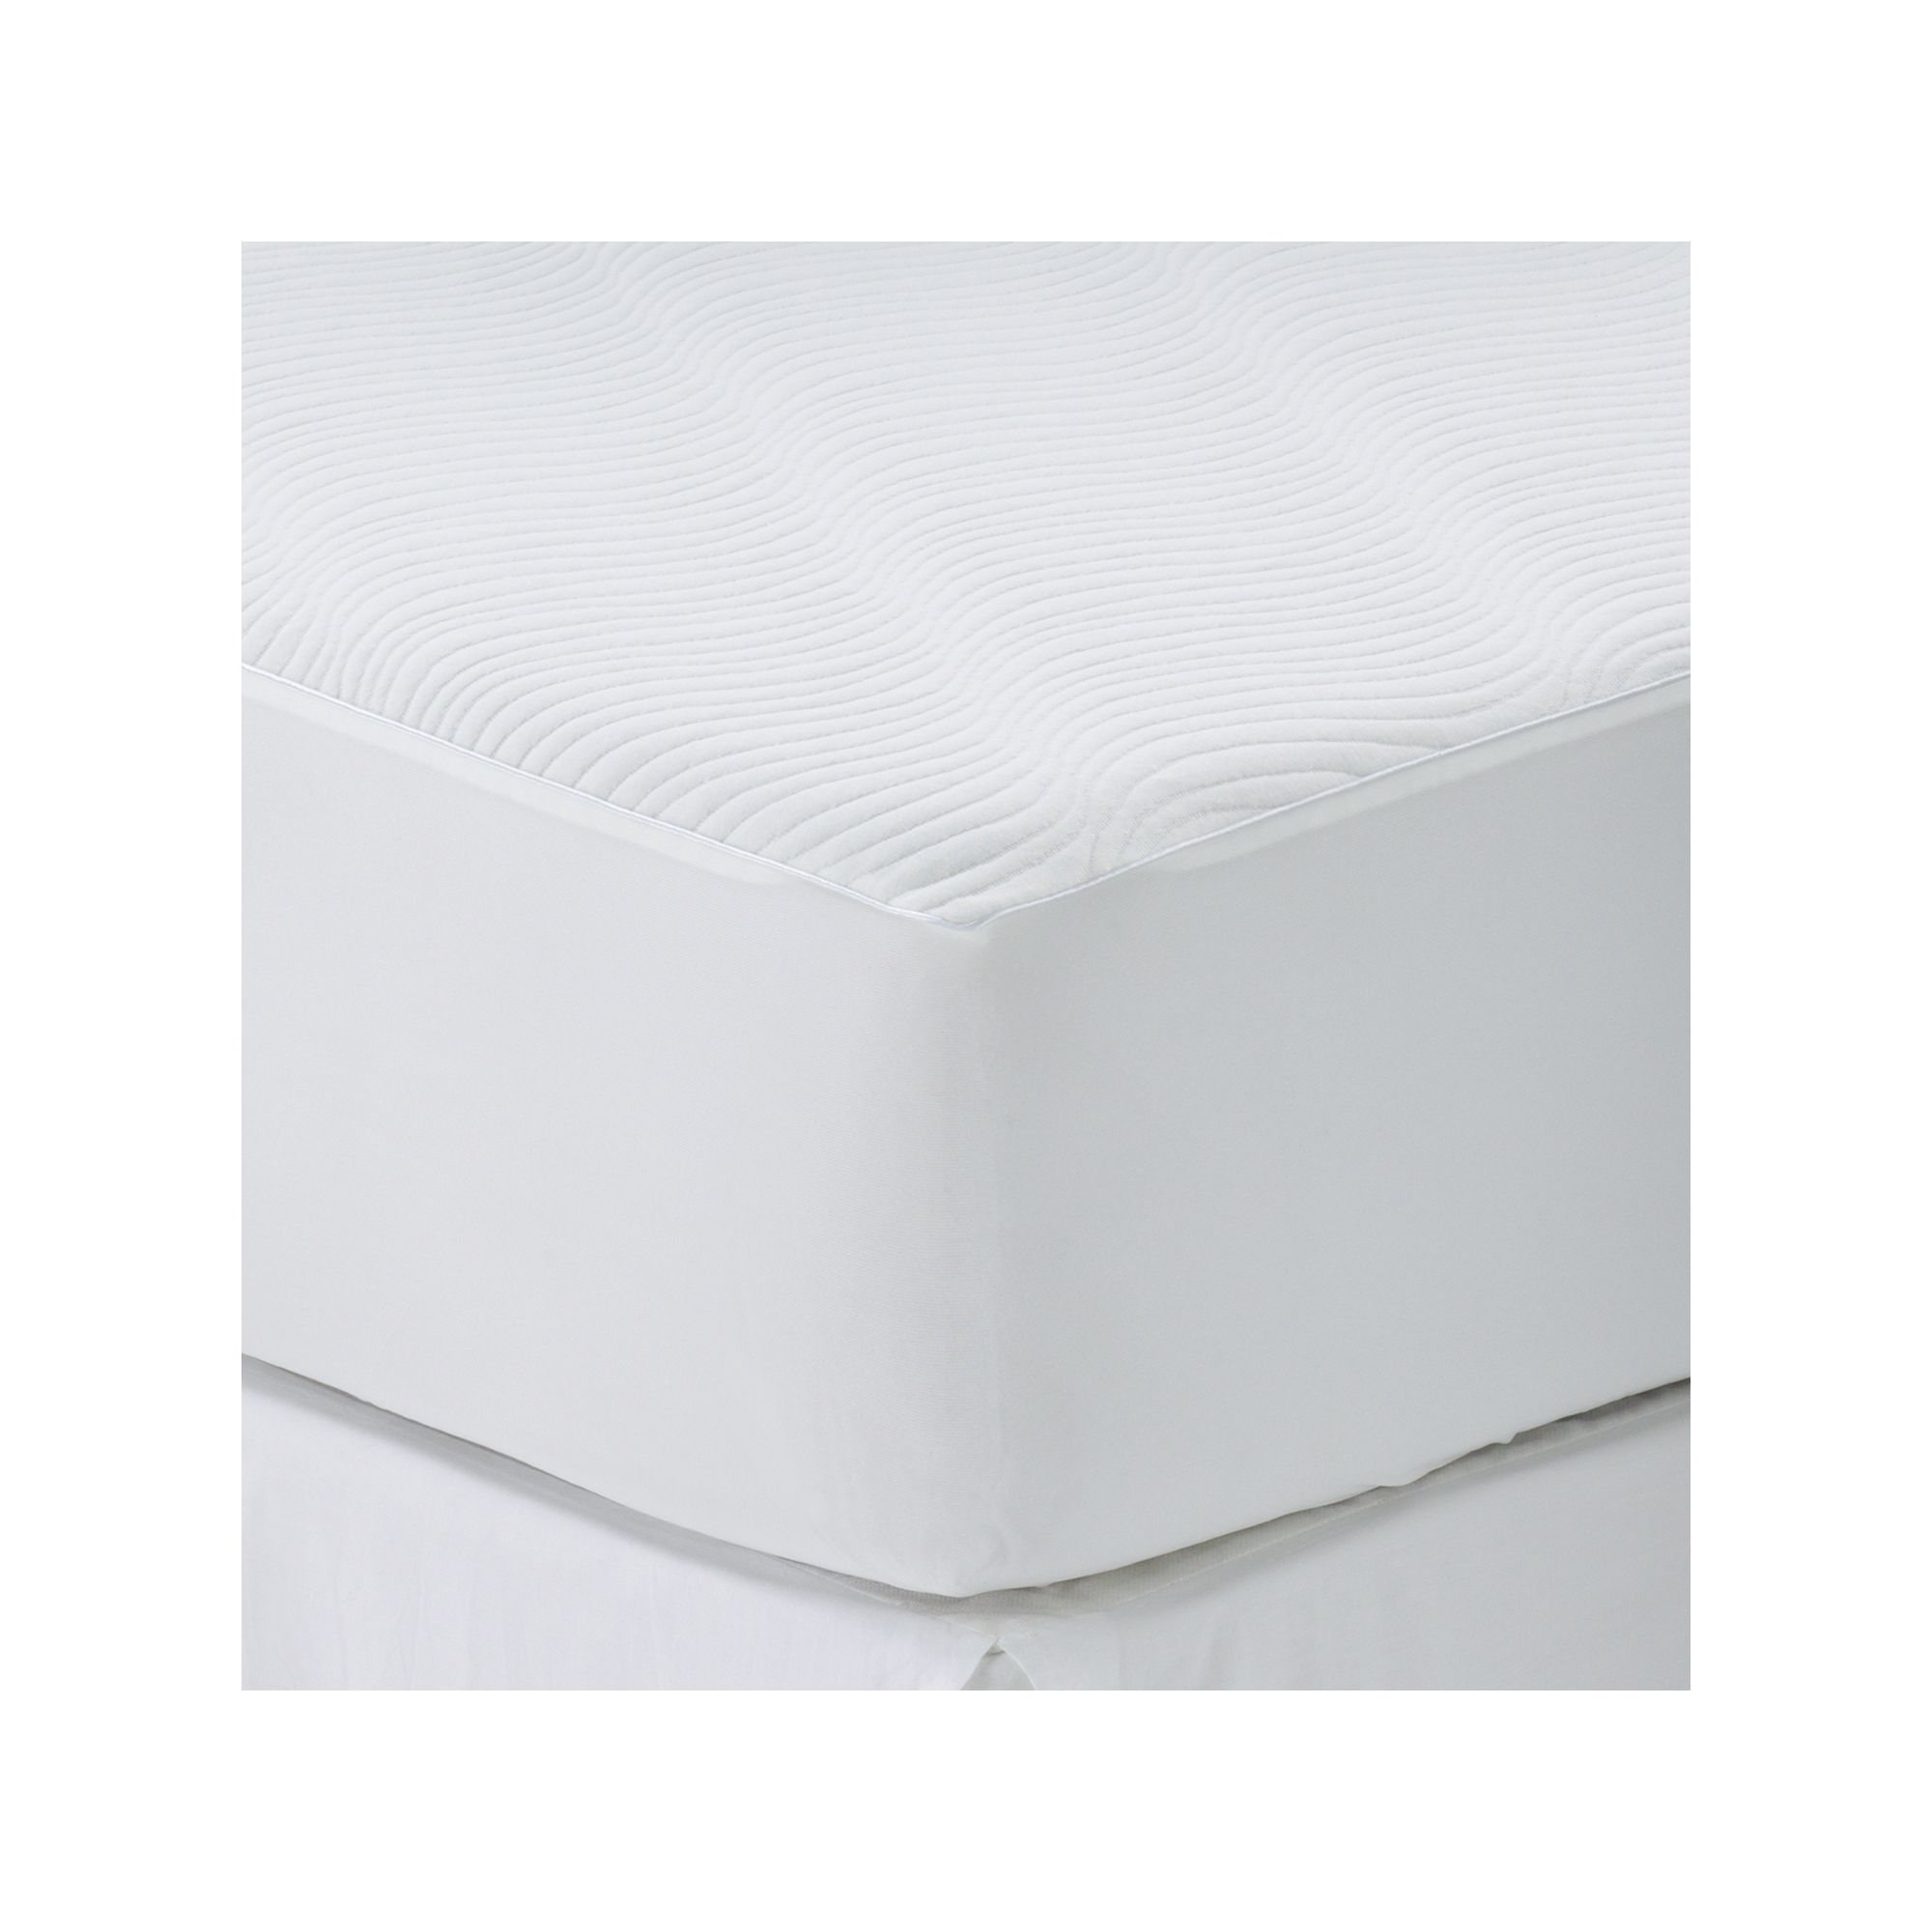 sealy posturepedic luxury knit waterproof stain release mattress